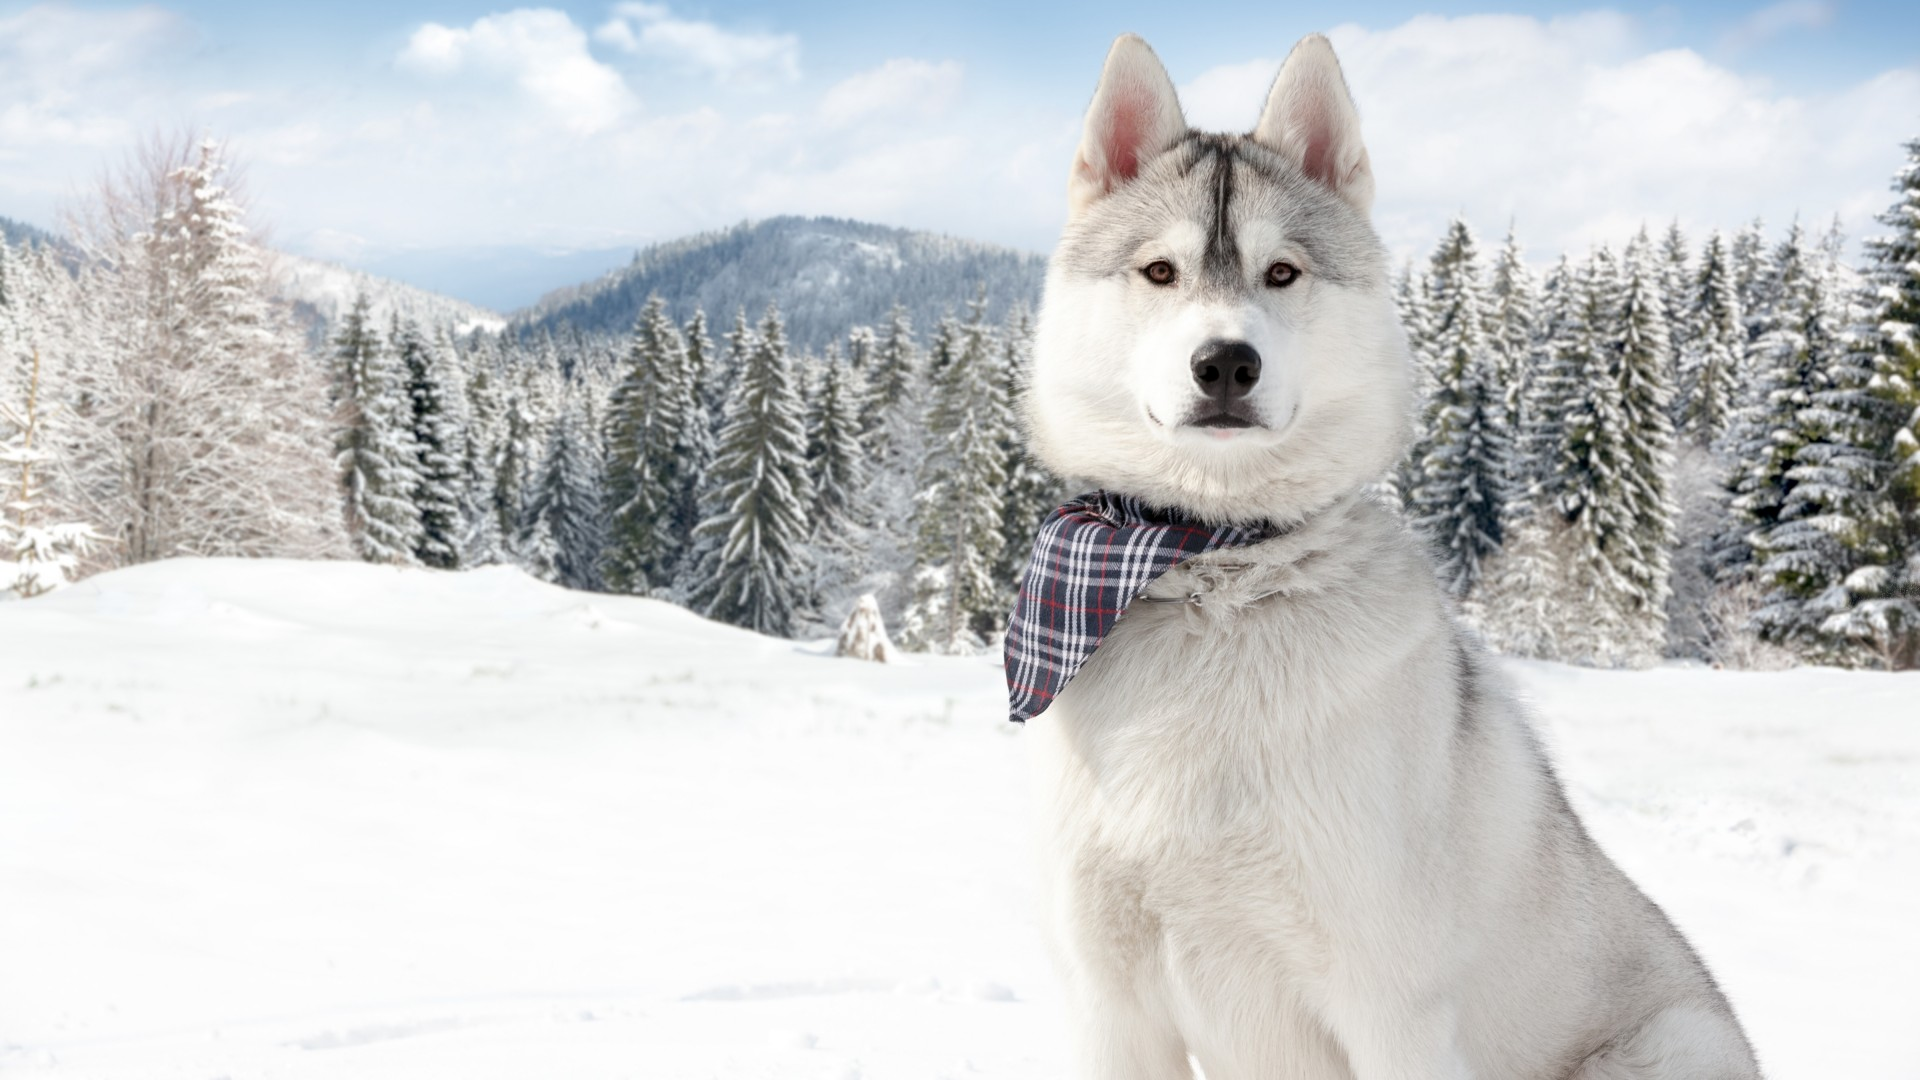 Cute Wallpaper Wid Quotes Wallpaper Huskies Dog Puppy Snow Forest Winter White